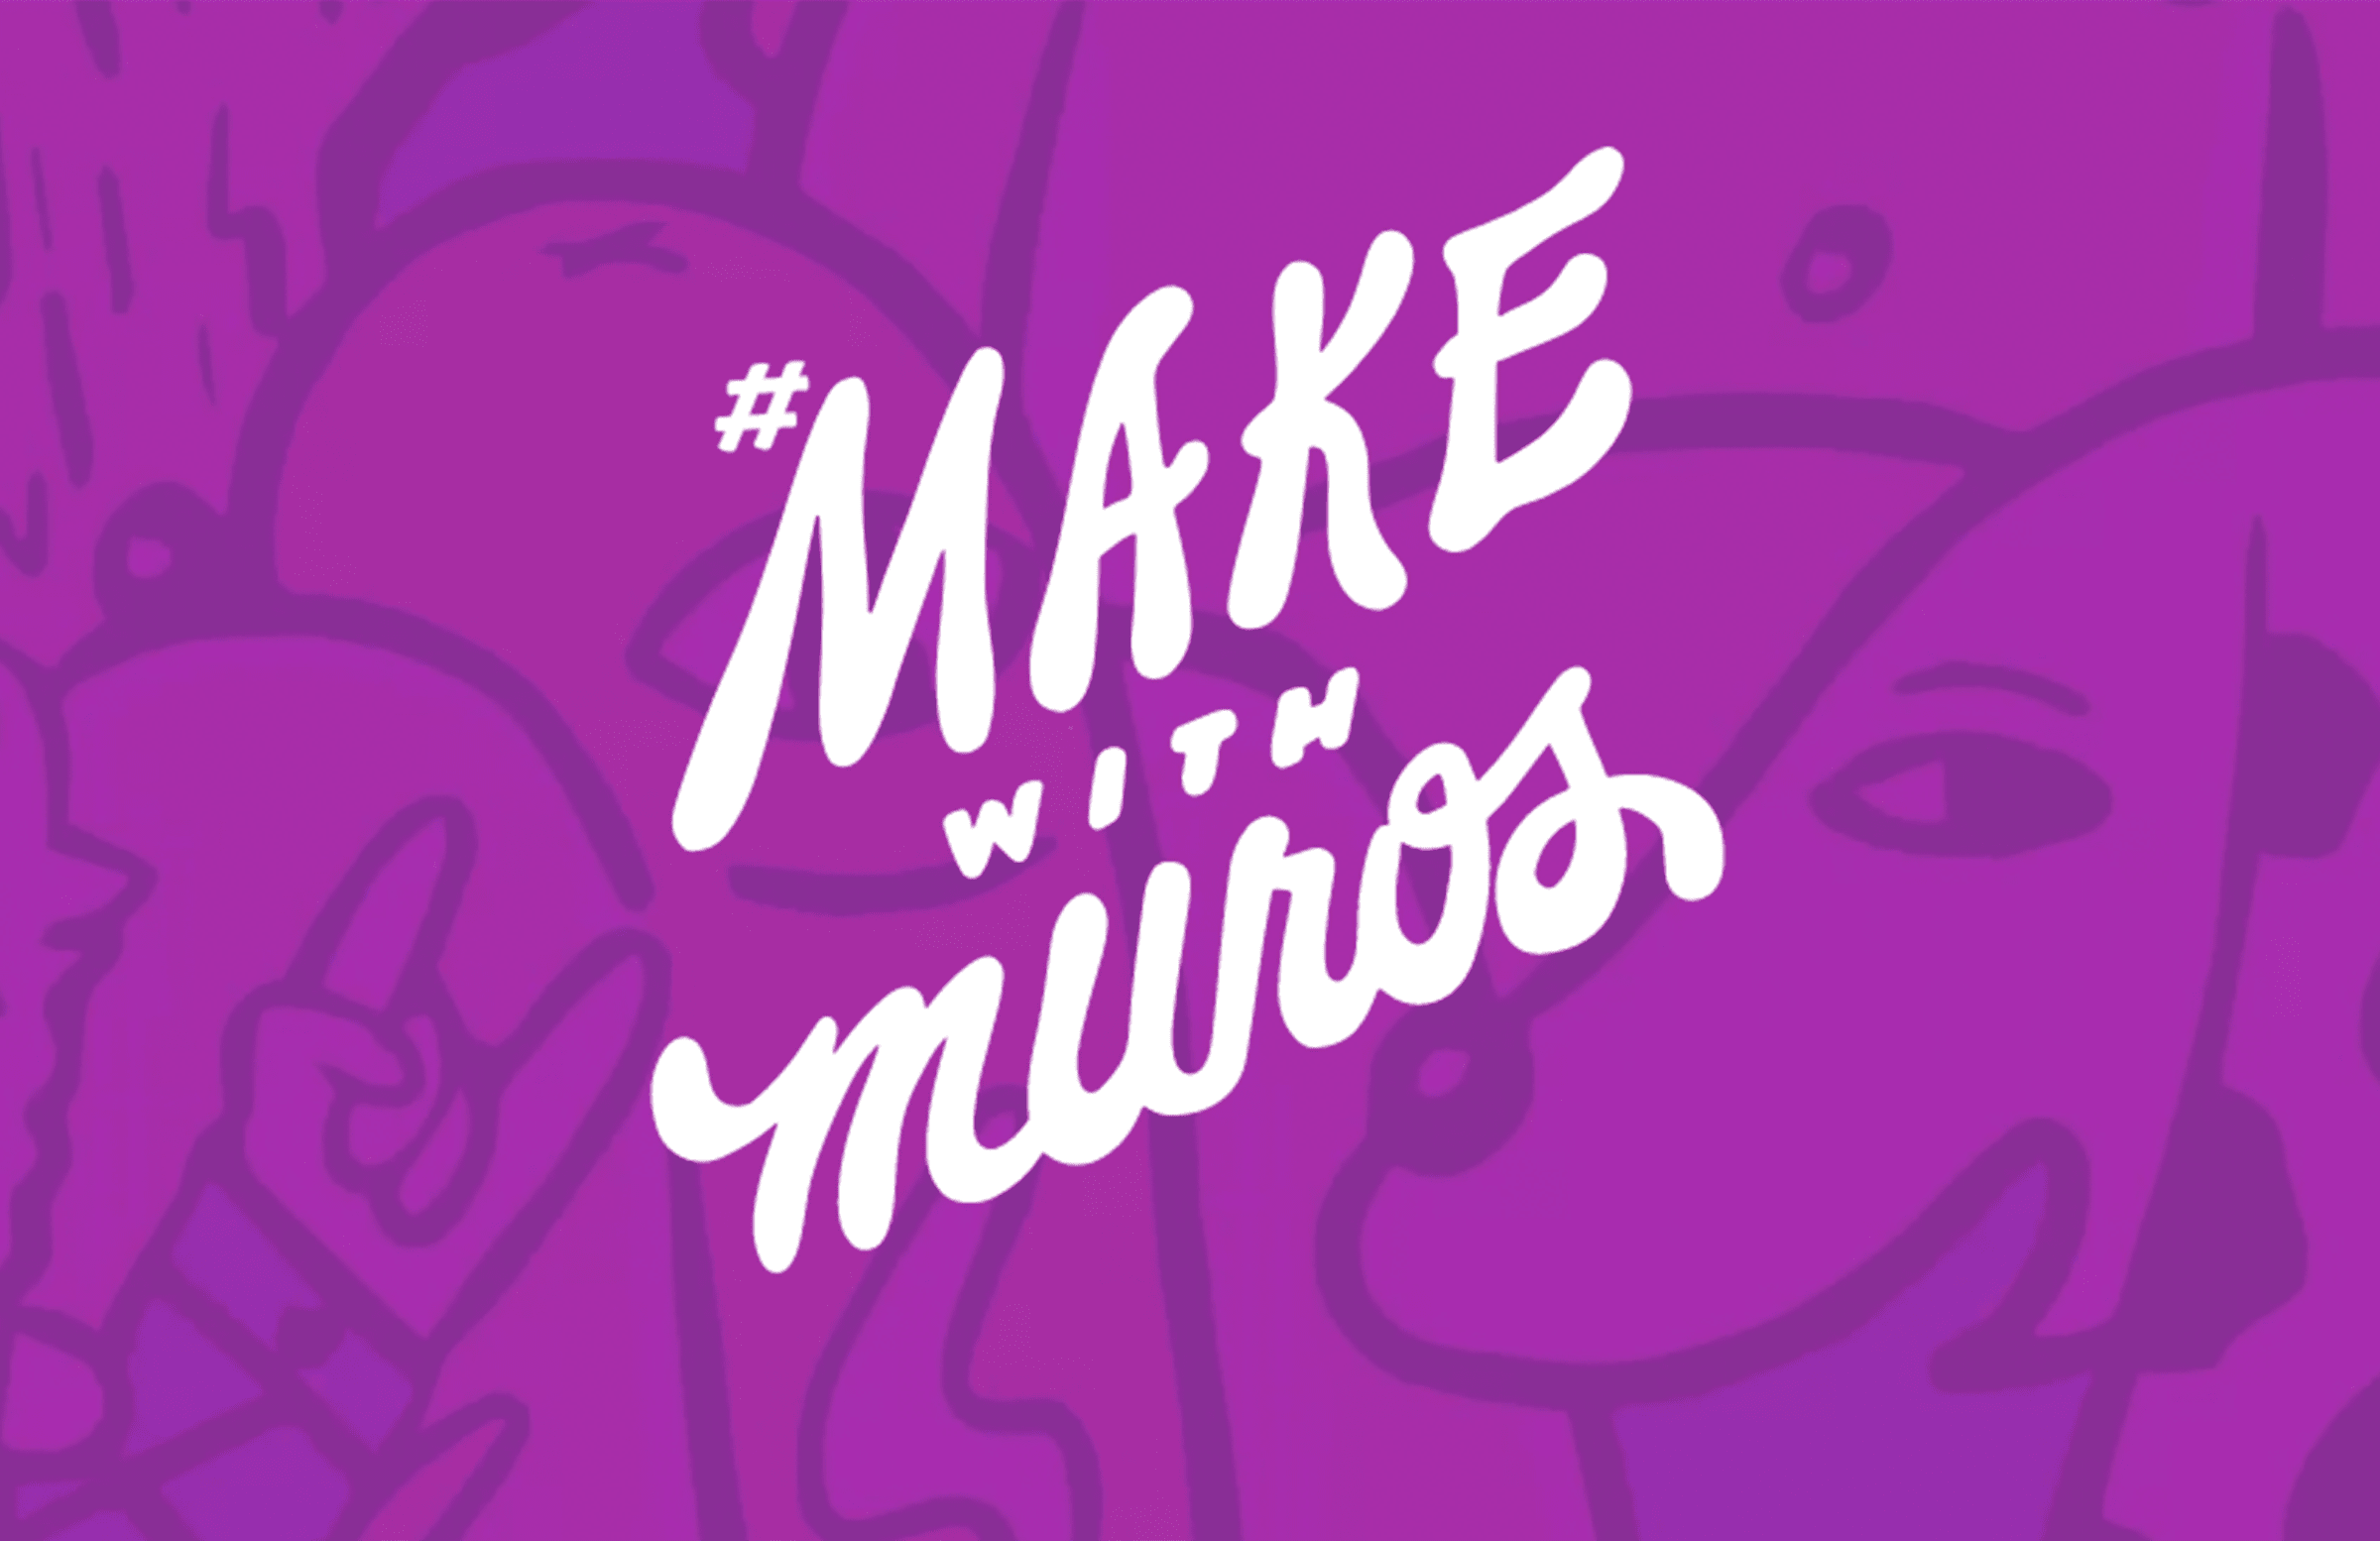 #Make with muros in white text on purple background